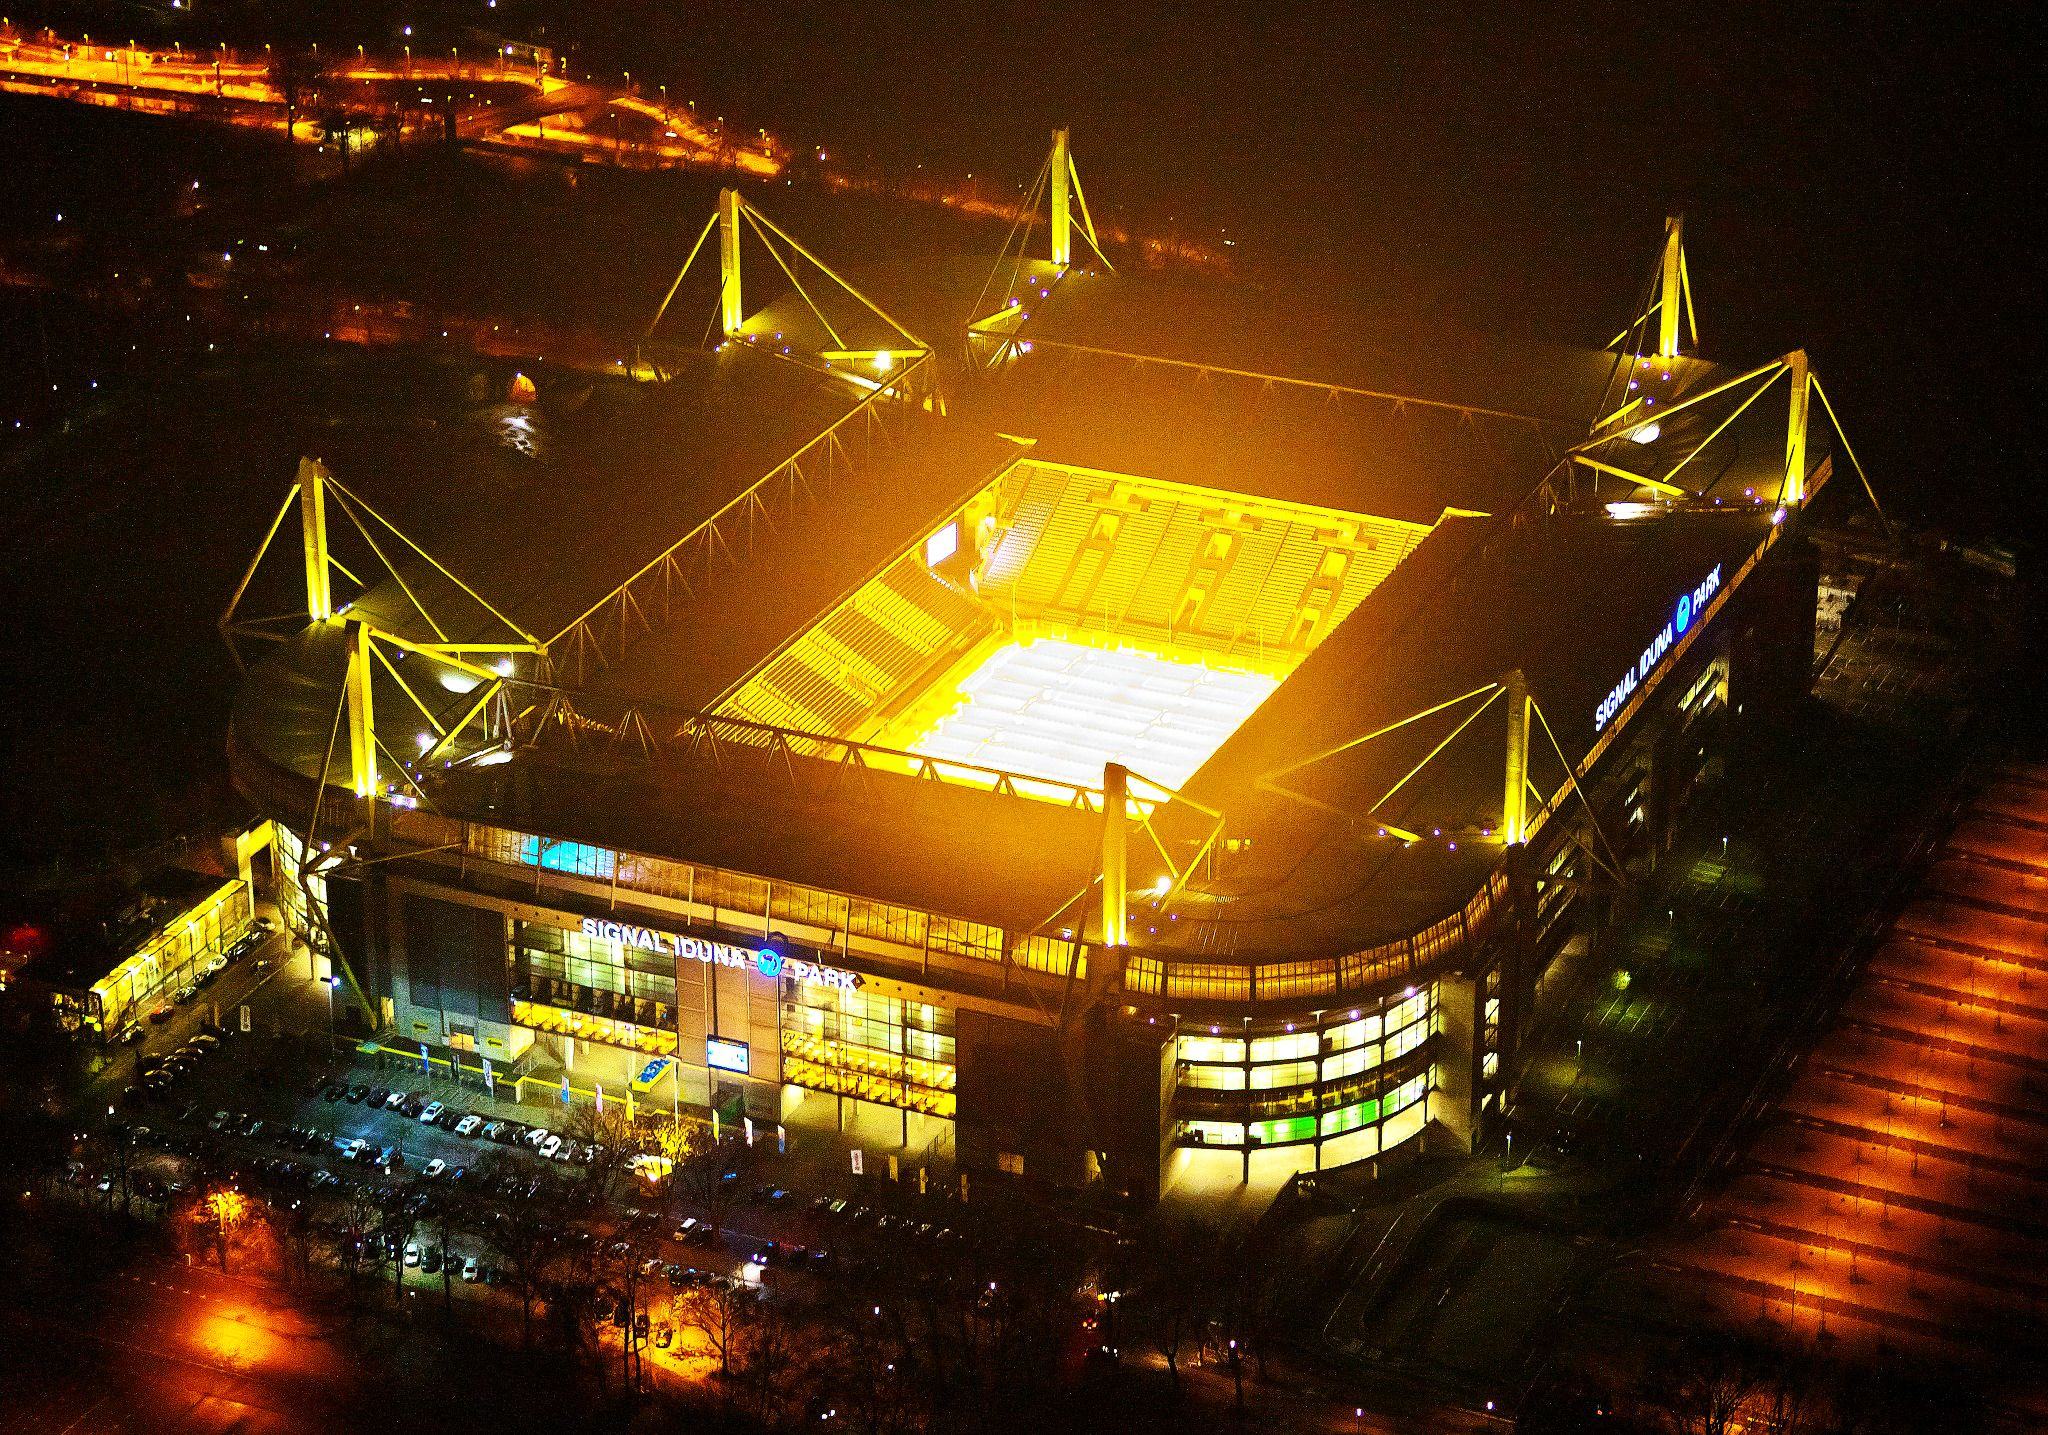 Westfalenstadion At Night Borussia Dortmund Dortmund Esporte Interativo